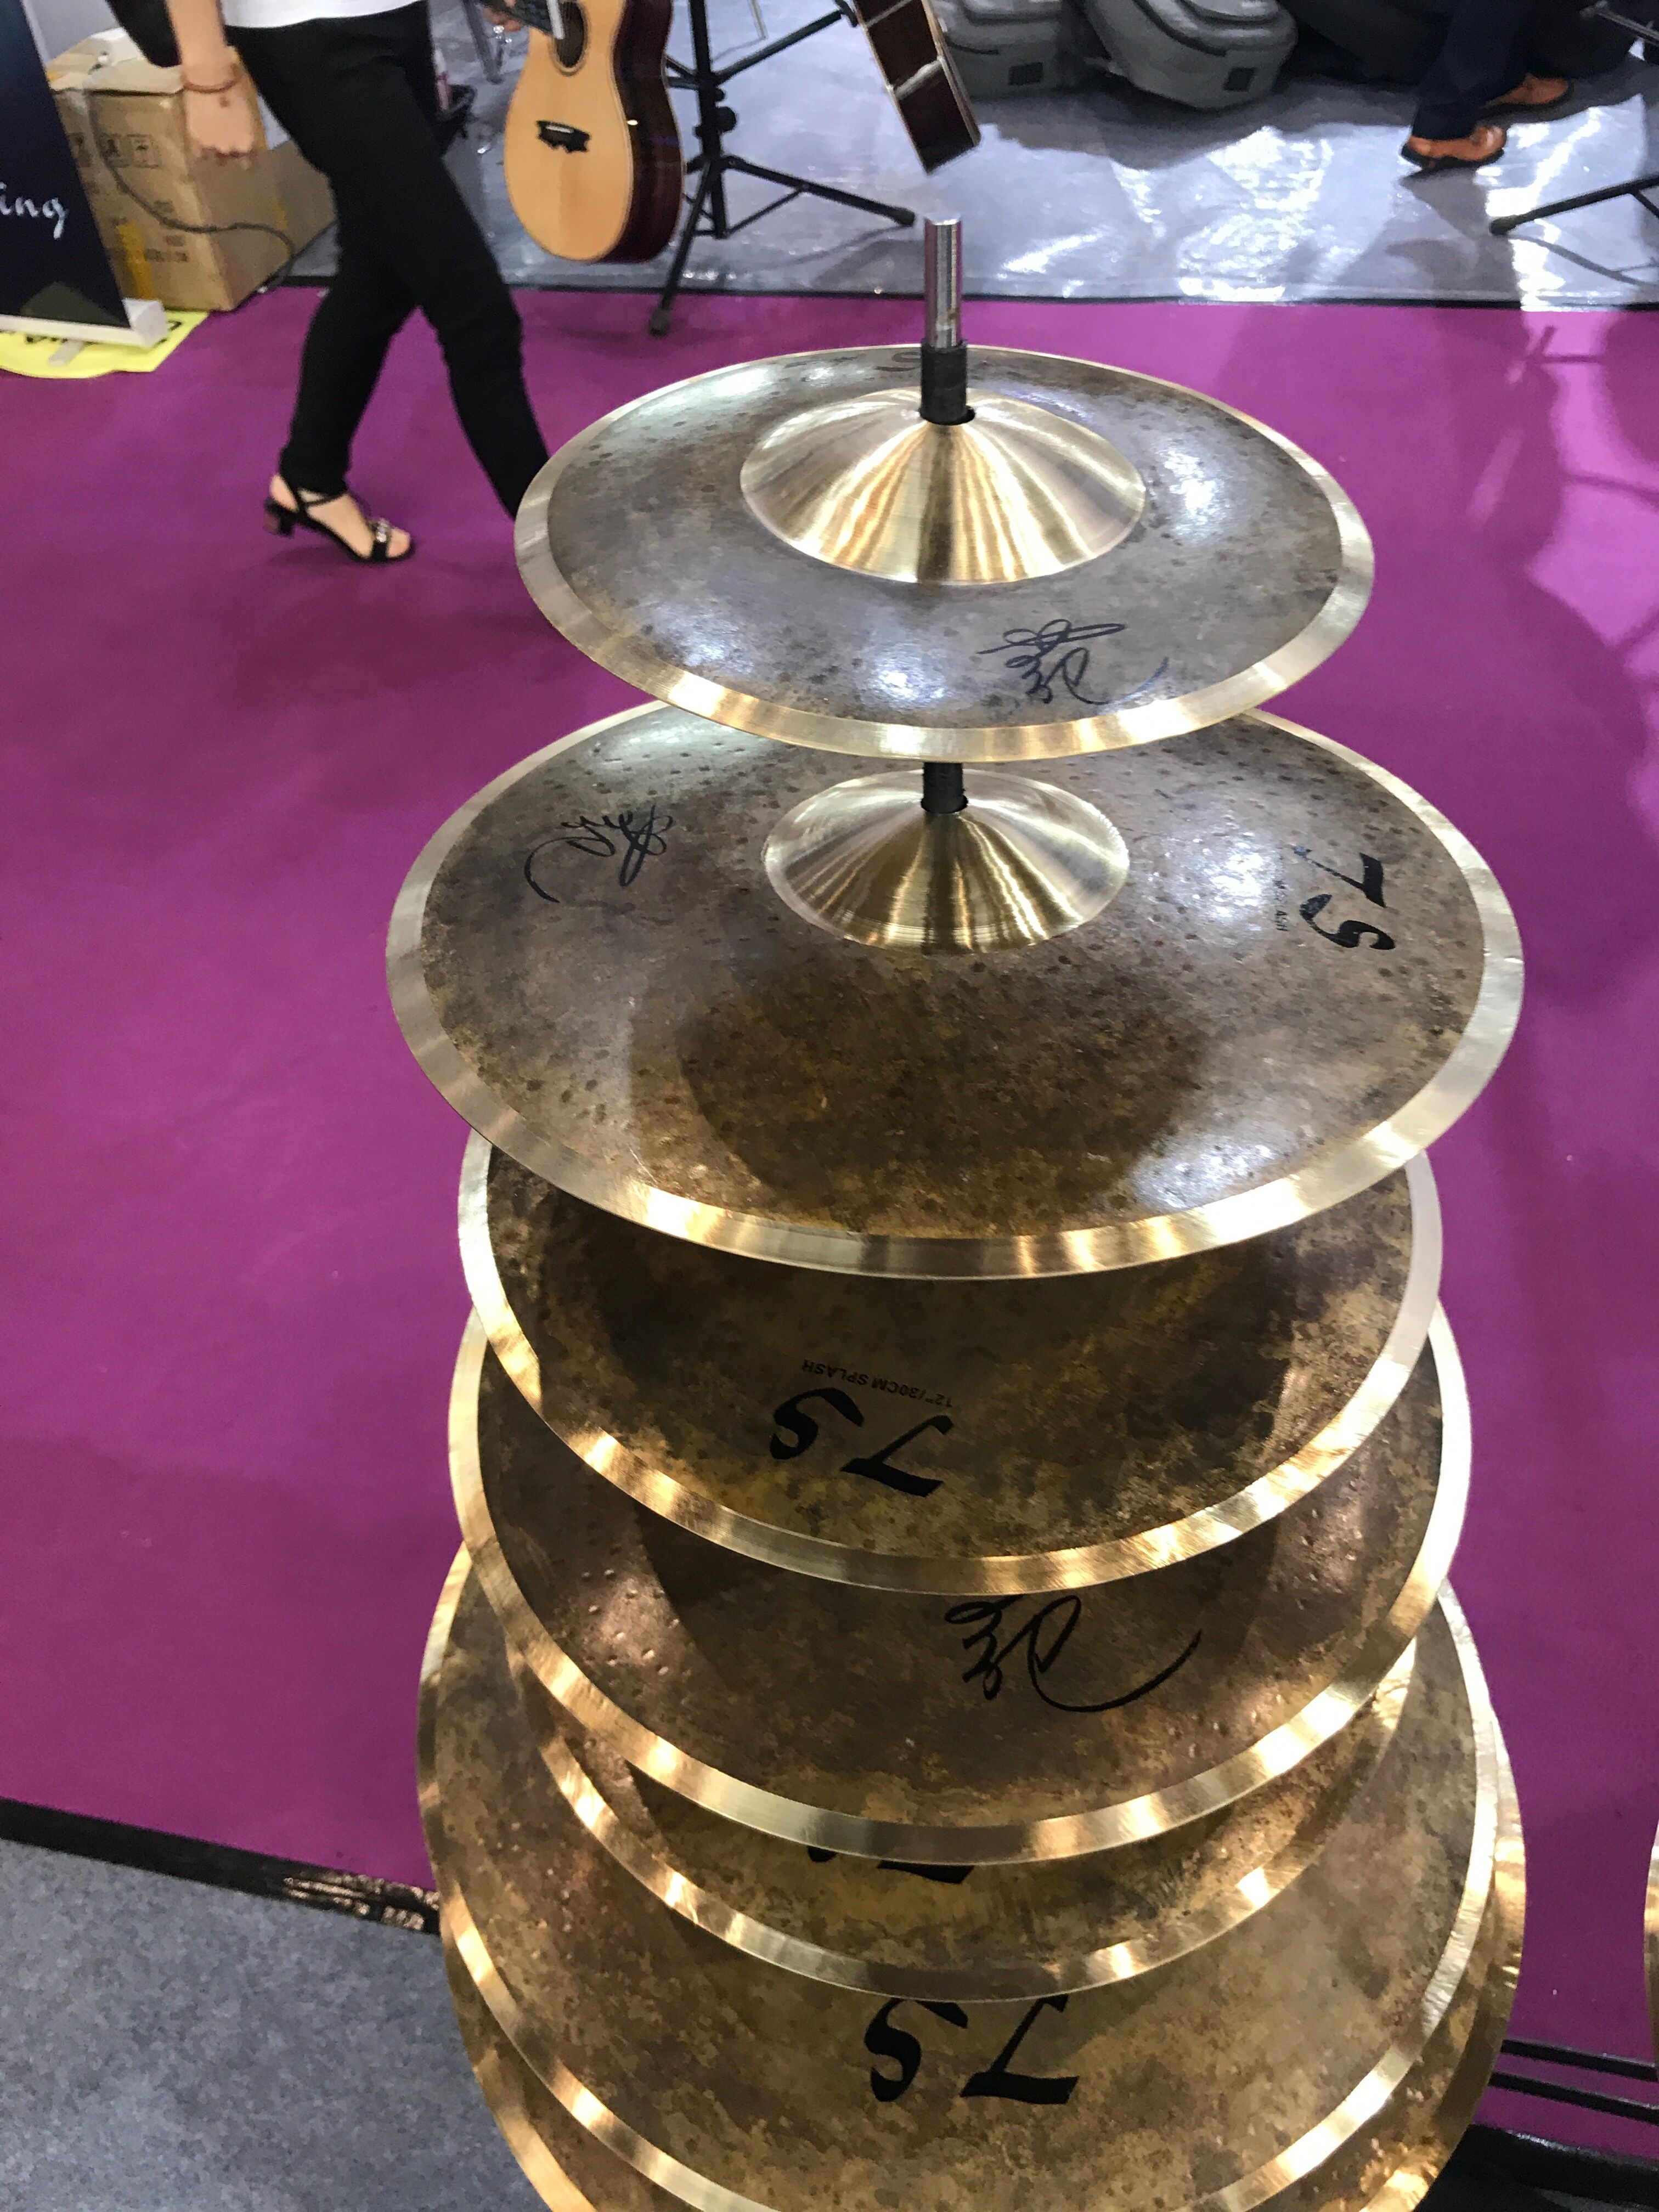 cymbals b20 thinner cymbals for percussion musical instruments